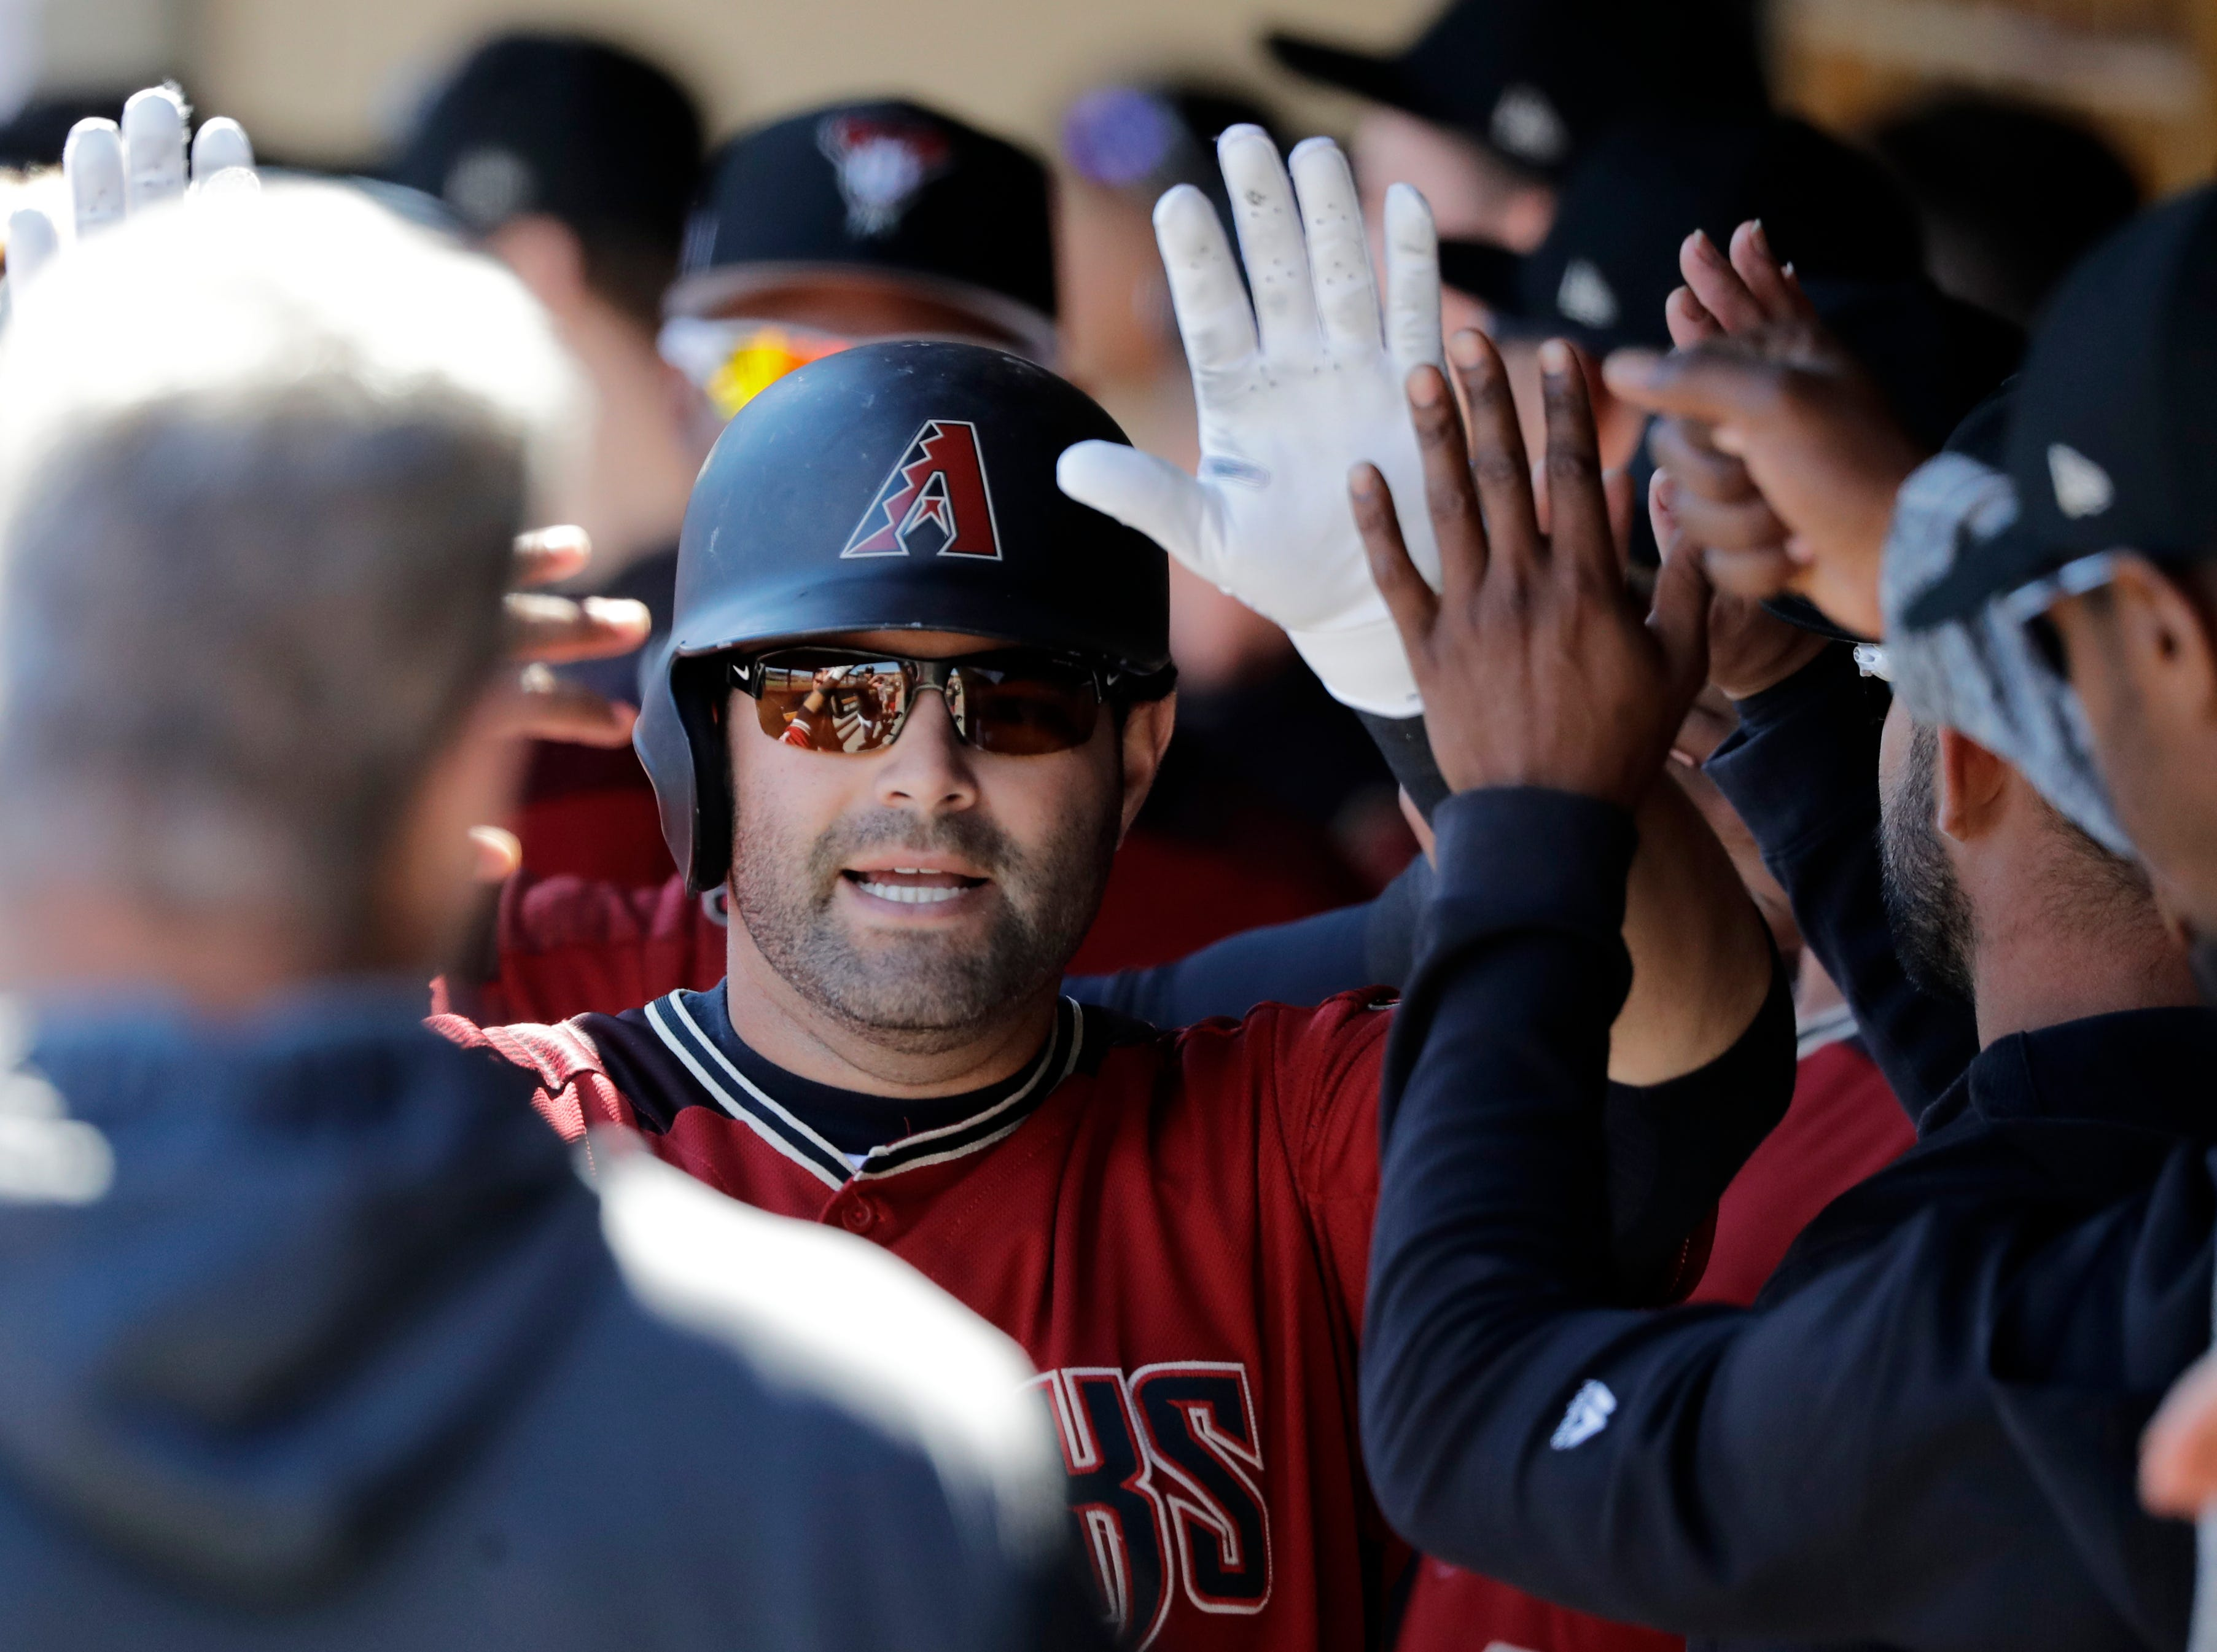 Arizona Diamondbacks' Alex Avila is congratulated after driving in a run against the San Francisco Giants in a spring training baseball game Thursday, March 14, 2019, in Scottsdale, Ariz.